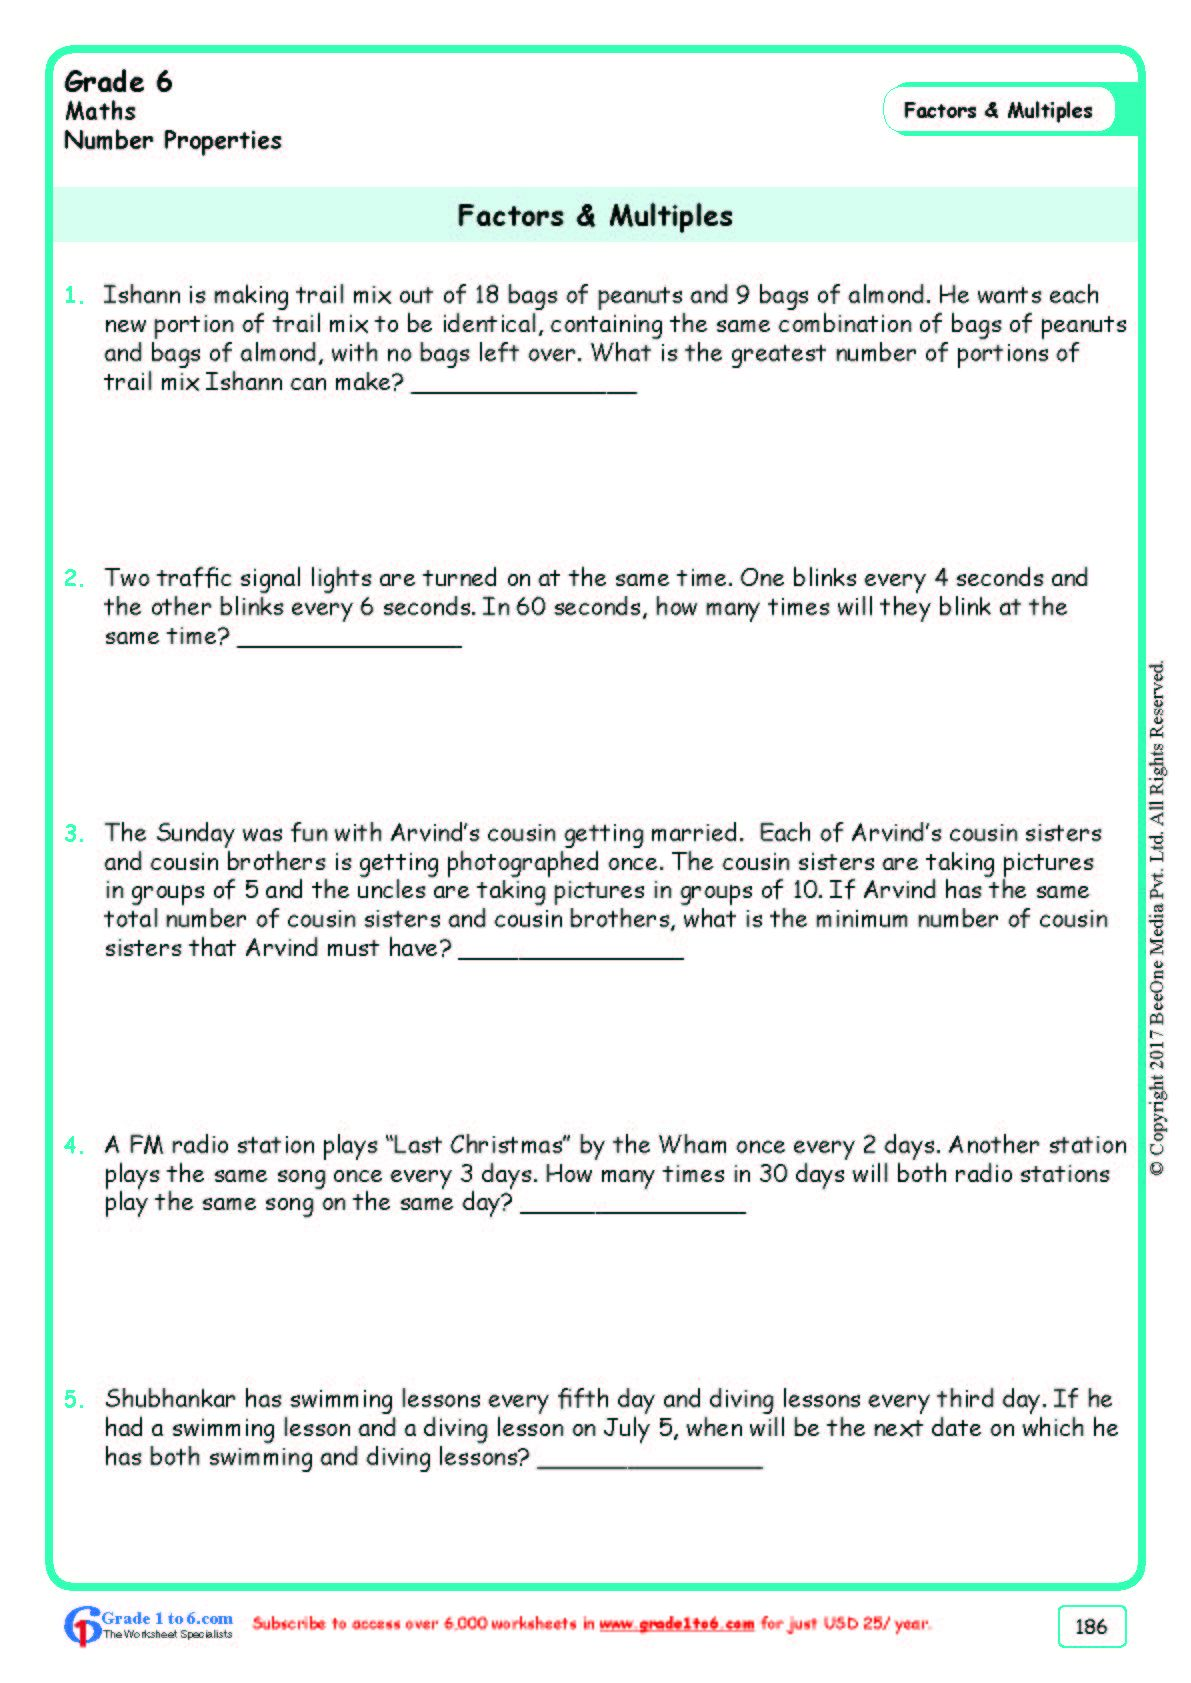 Worksheet Grade 6 Math Factors Amp Multiples In